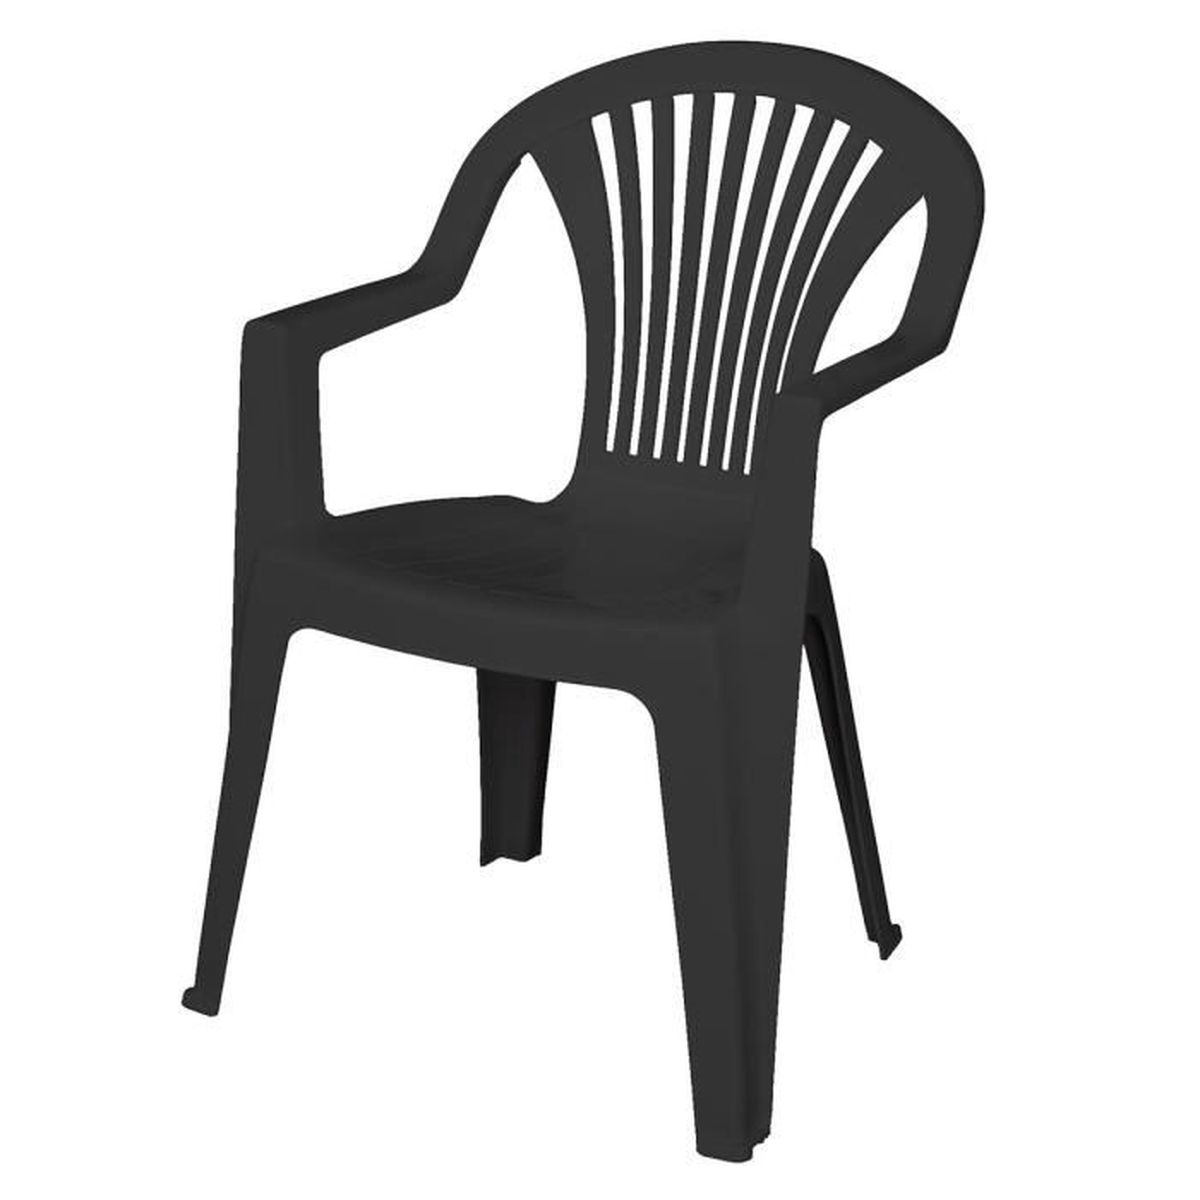 chaise de jardin pvc achat vente chaise de jardin pvc pas cher cdiscount. Black Bedroom Furniture Sets. Home Design Ideas